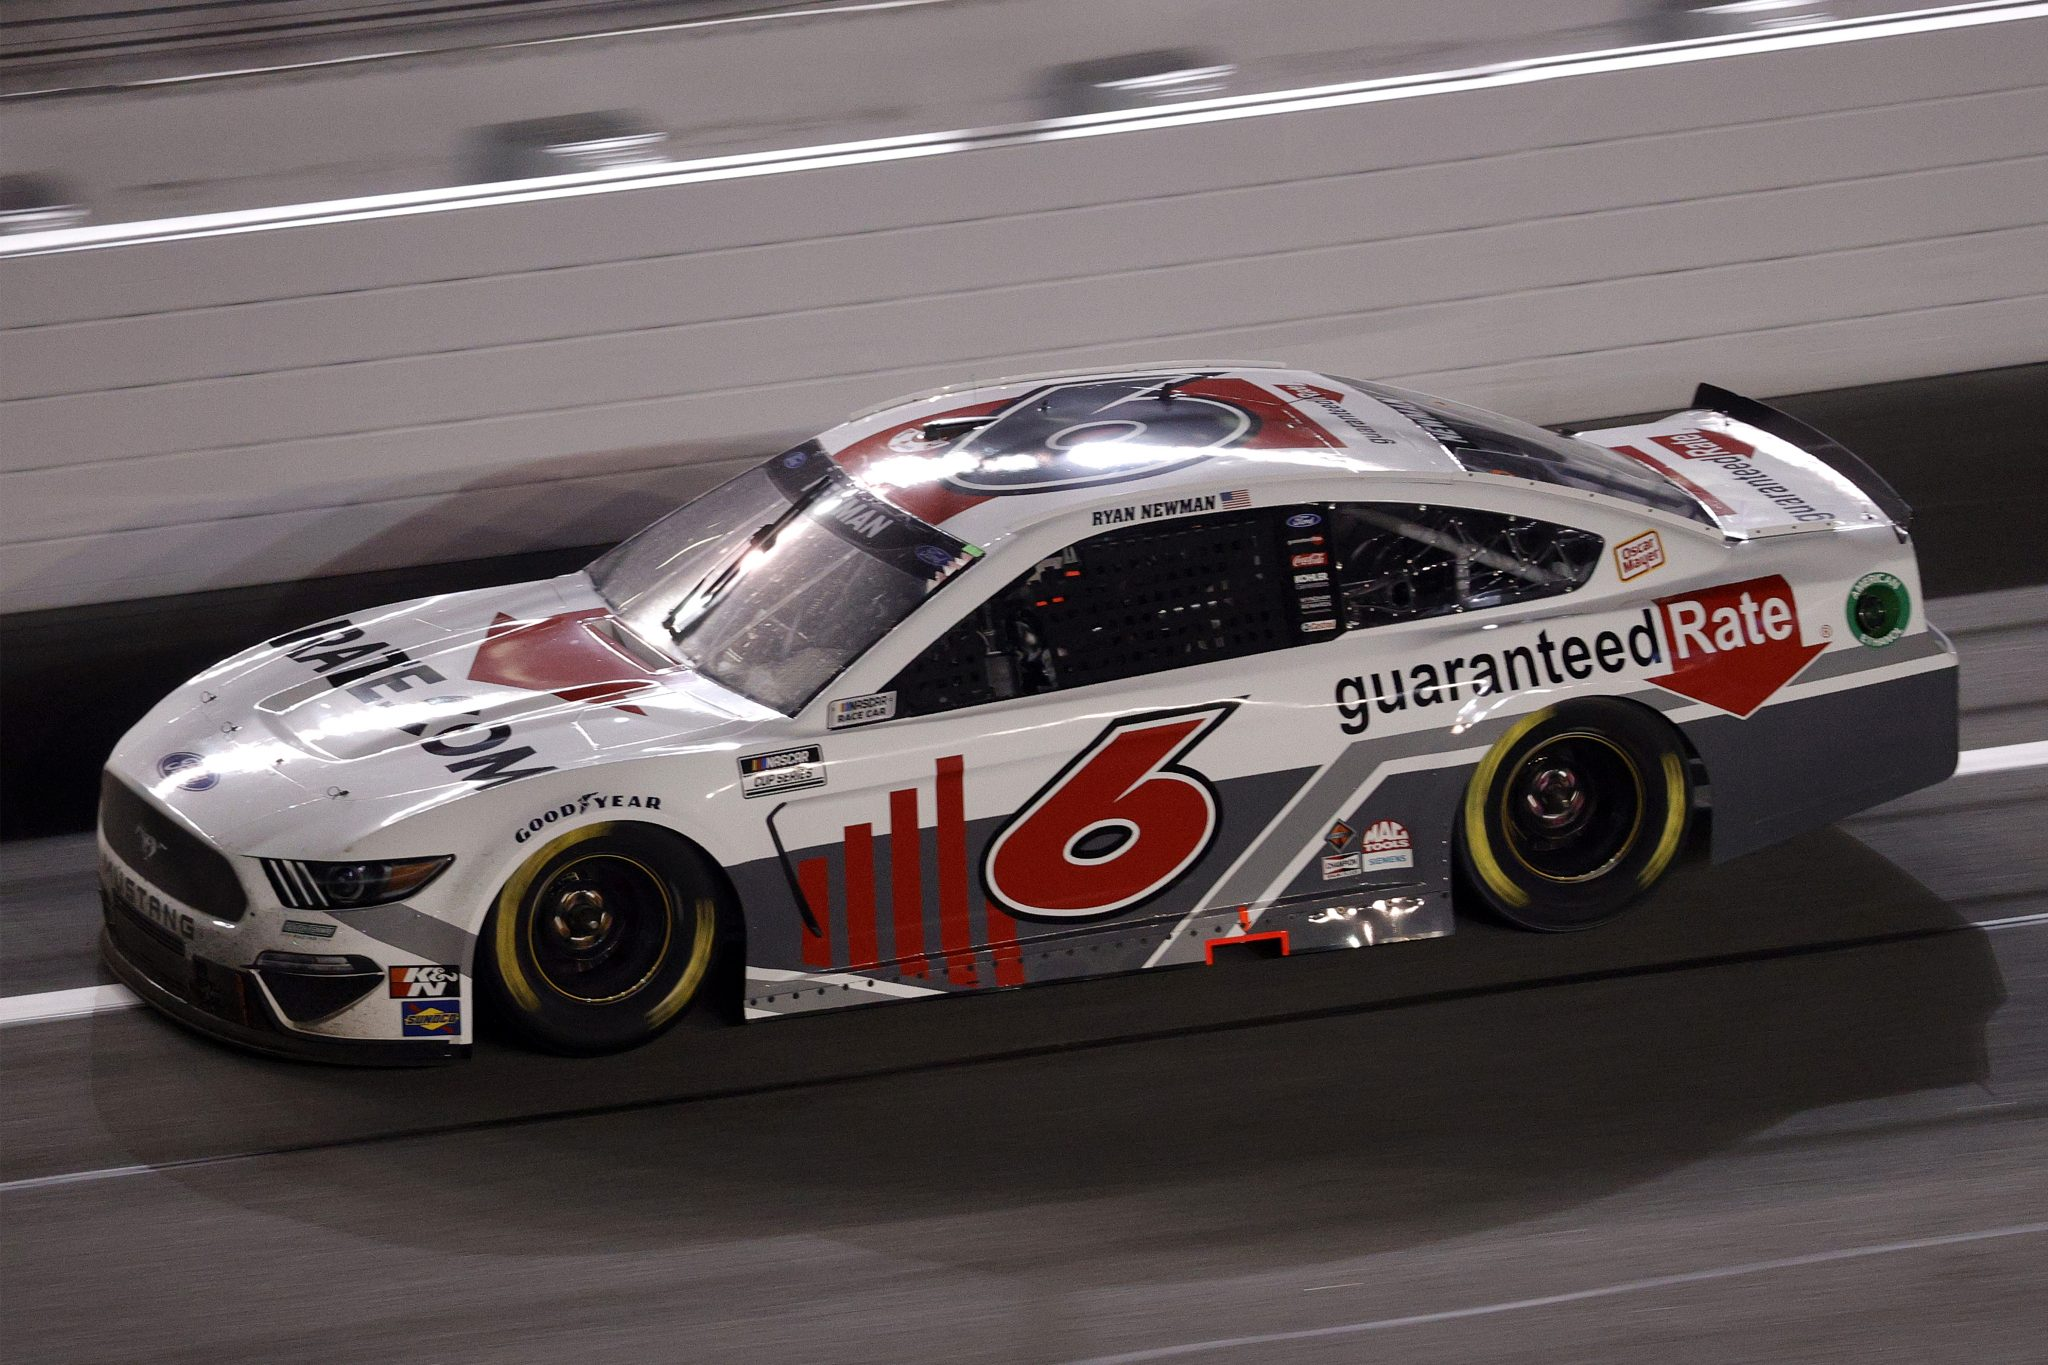 DAYTONA BEACH, FLORIDA - FEBRUARY 09: Ryan Newman, driver of the #6 Guaranteed Rate Ford, drives during the NASCAR Cup Series Busch Clash at Daytona at Daytona International Speedway on February 09, 2021 in Daytona Beach, Florida. (Photo by Chris Graythen/Getty Images) | Getty Images